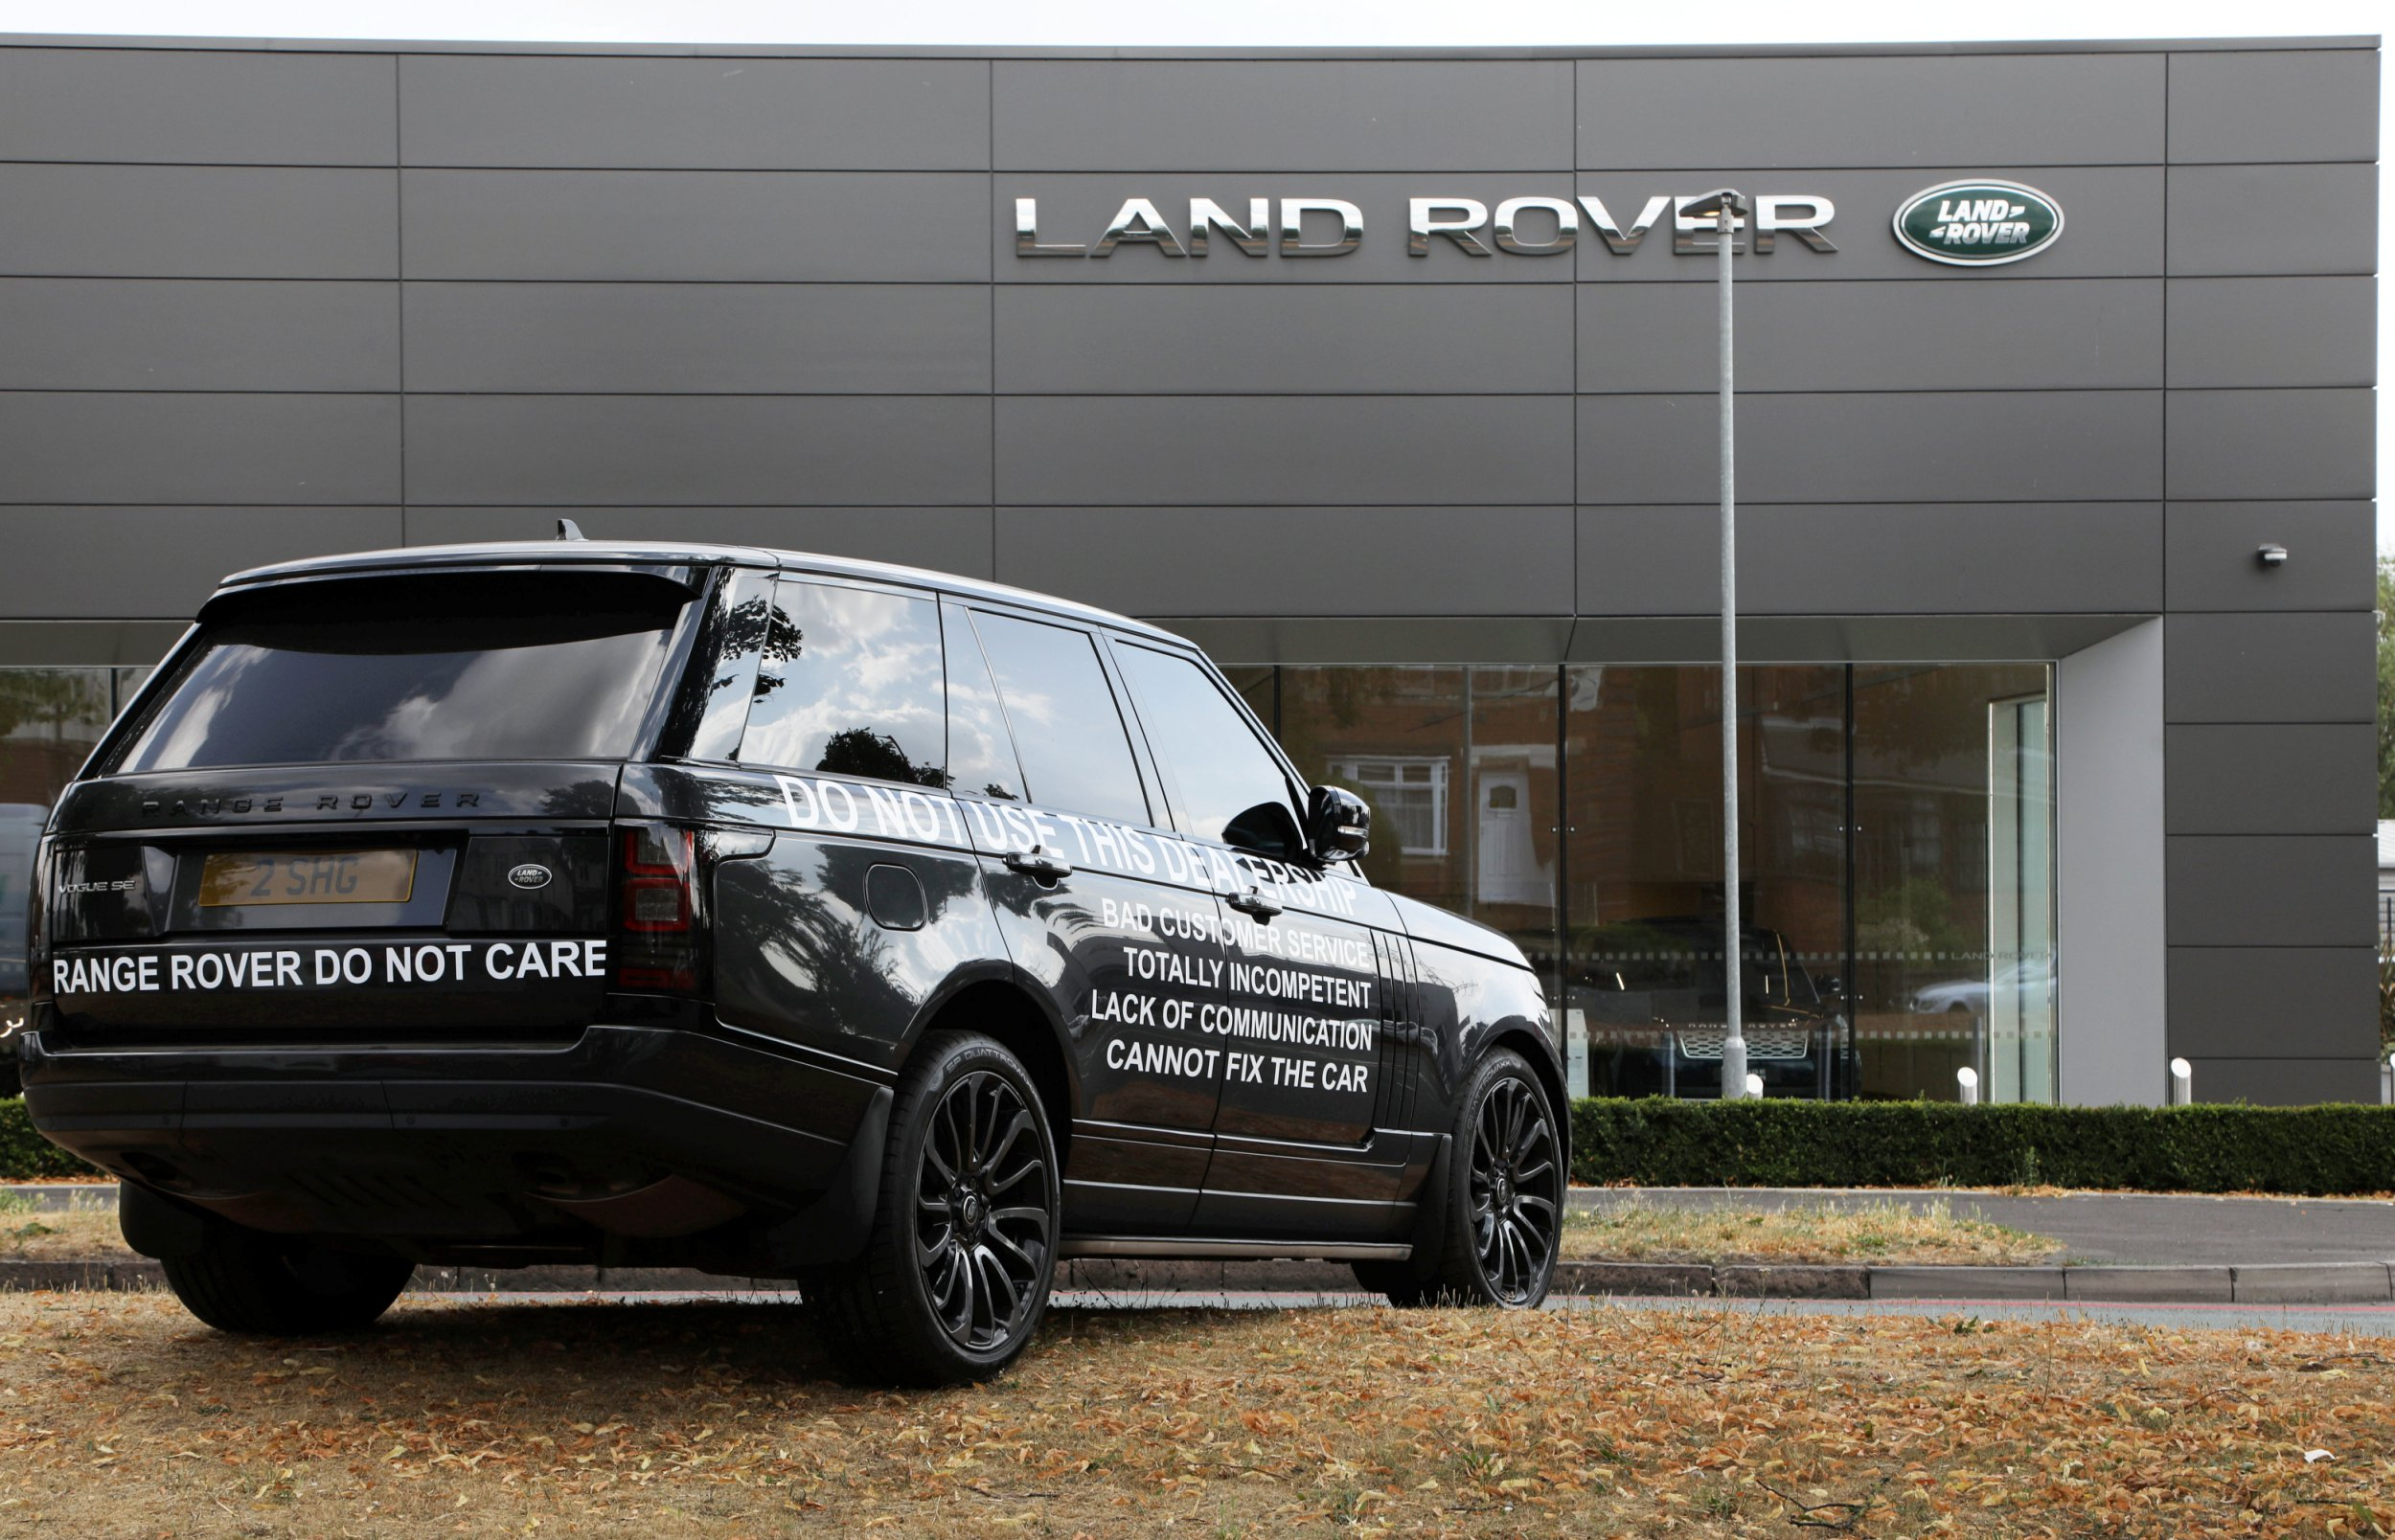 """A motorist has plastered their ?63,000 Range Rover Vogue with slogans and left it outside a Birmingham dealership in an apparent dispute. See NTI story NTIROVER. The Lancaster Land Rover customer parked the black 2016 vehicle on the central reservation, facing towards the Tyburn Road showroom in Erdington, Birmingham. The driver staged the one-car protest in an apparent bid to put off future customers. Stickers attached to both sides of the car read: """"Range Rover do not care. Do not use this dealership. Bad customer service, totally incompetent, lack of communication, cannot fix the car."""" The issues leading to the car being dumped were unclear. The dealership confirmed it was aware of the vehicle and staff were due to meet with the customer to 'agree a way forward'."""